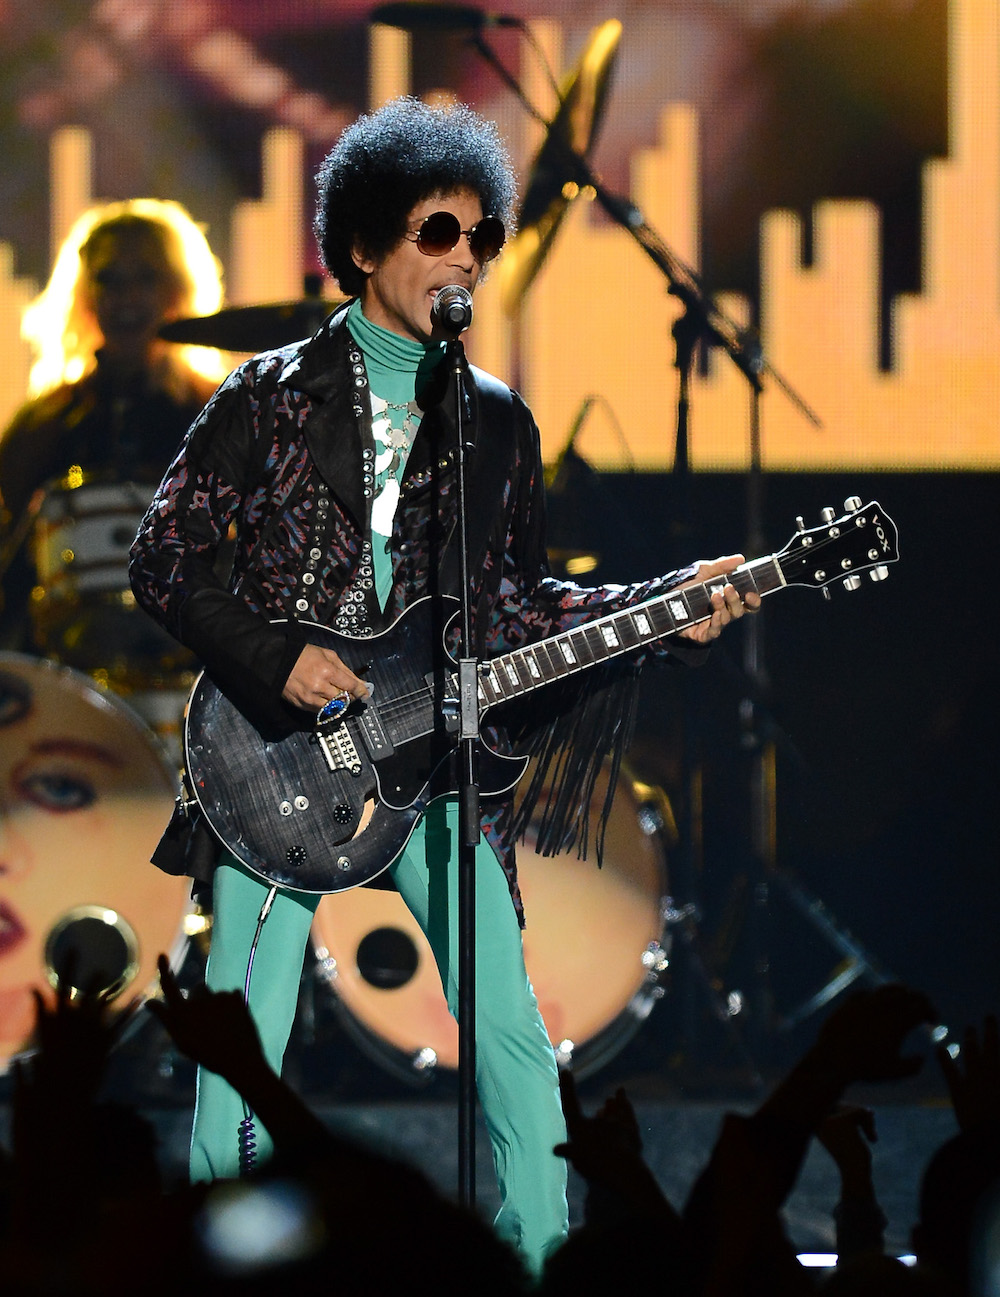 prince performing